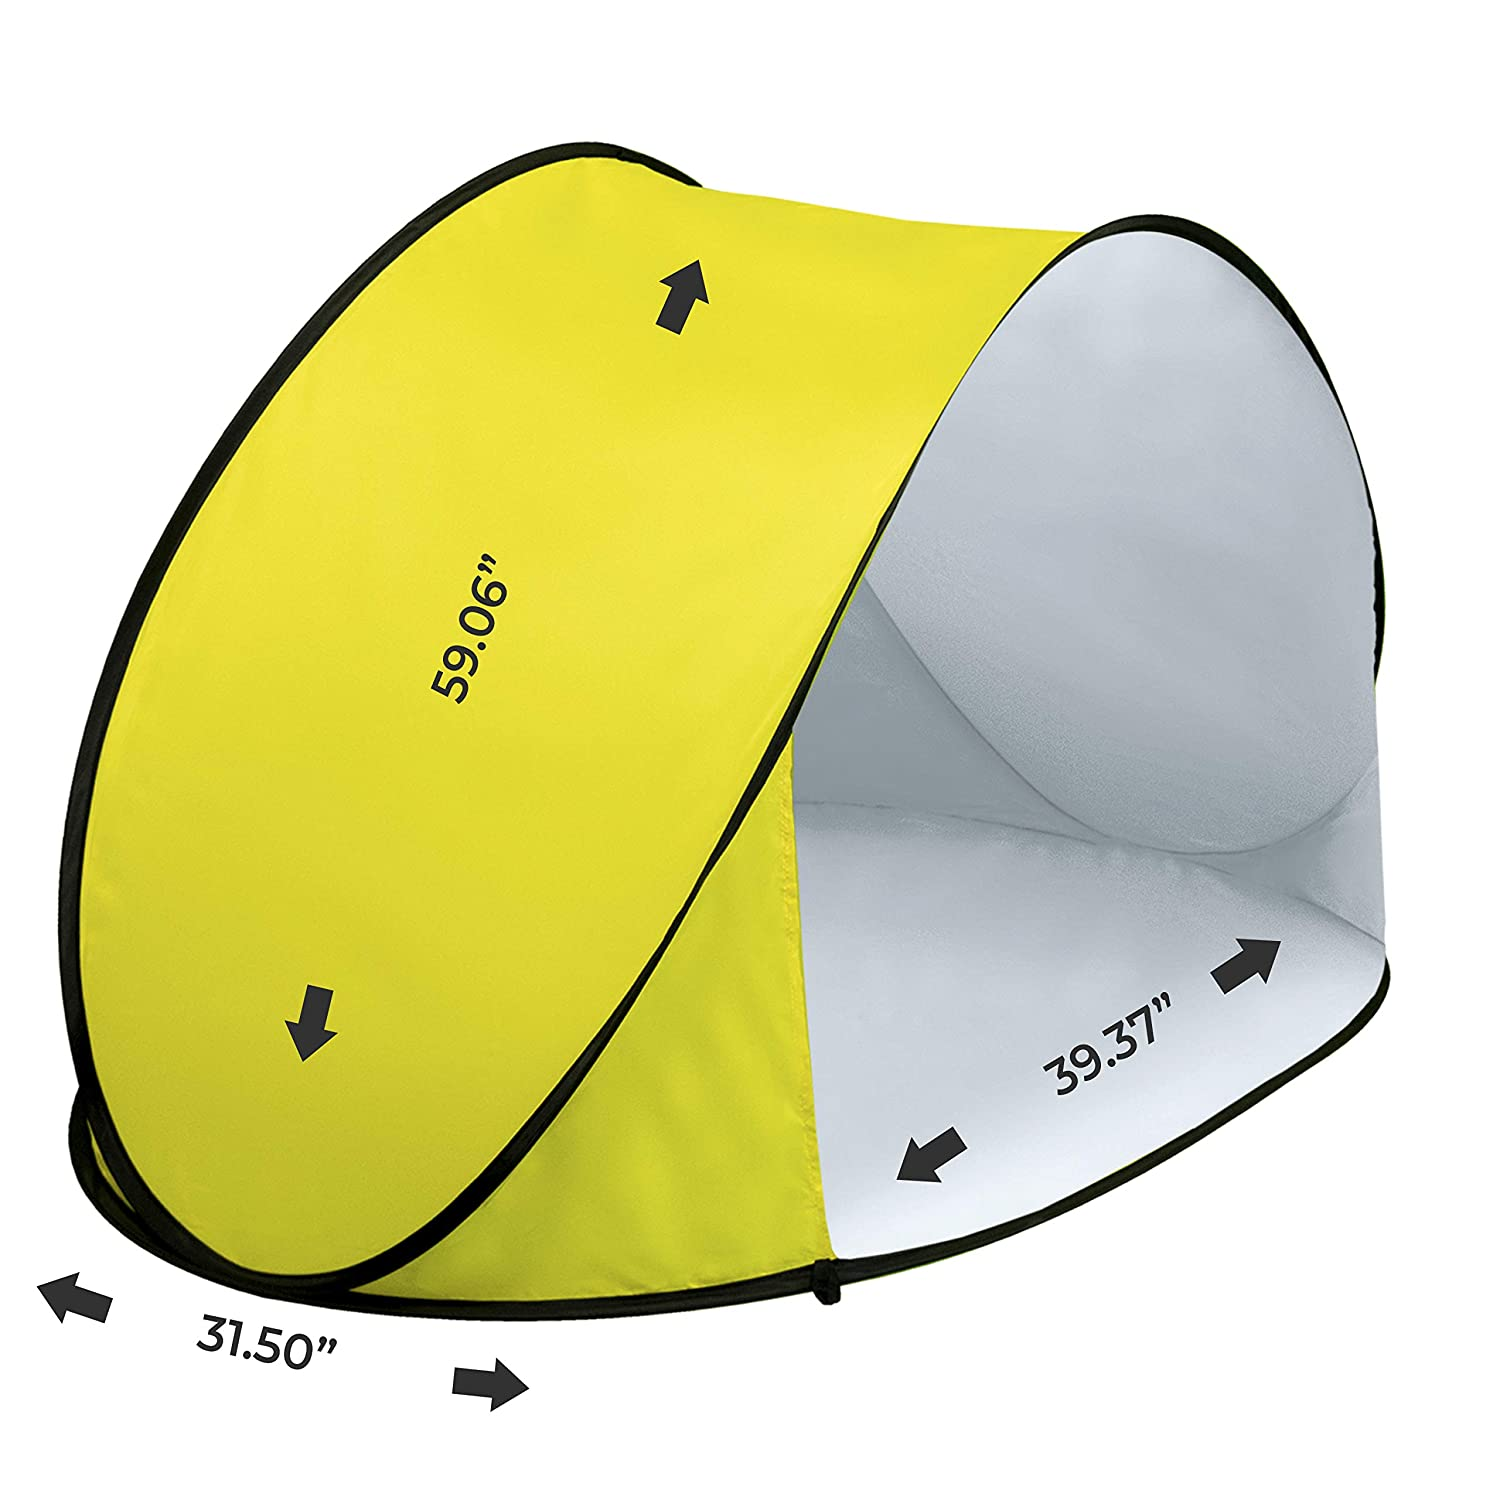 Pluto Yellow Beach Tent Protect Your Baby From the Sun. Quick Up Pop-Up Tent Canopy System for Kids. Easy-Up Cabana for Outdoor Activities, Great Sunshade Solution Protects Also From Rain Breeze